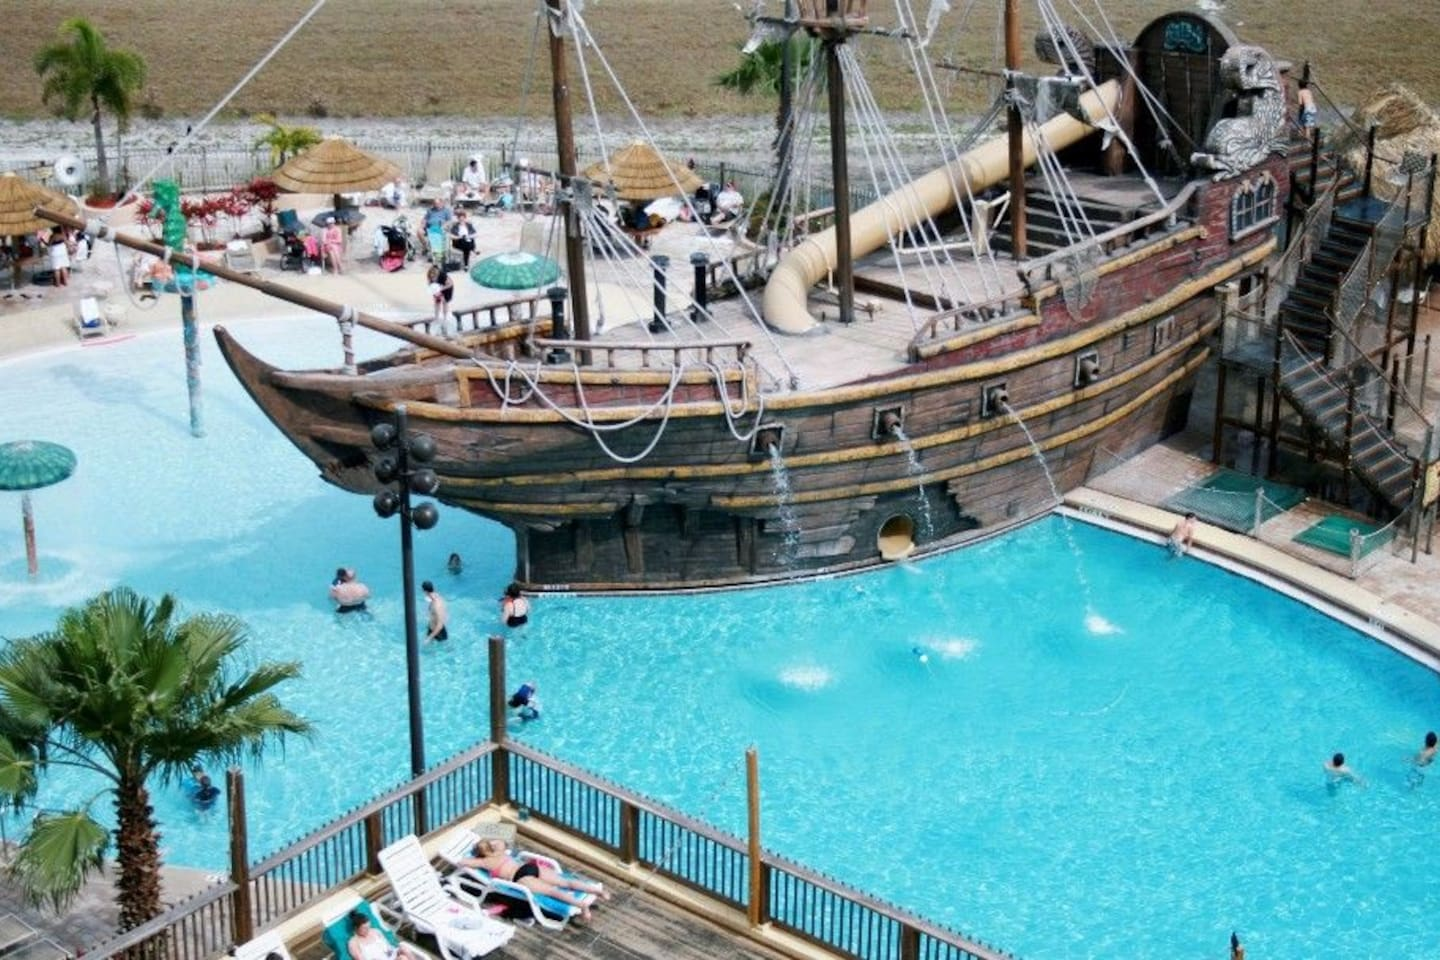 Take a plunge from the pirate ship, relax by the pool, or have a dip in the spa.